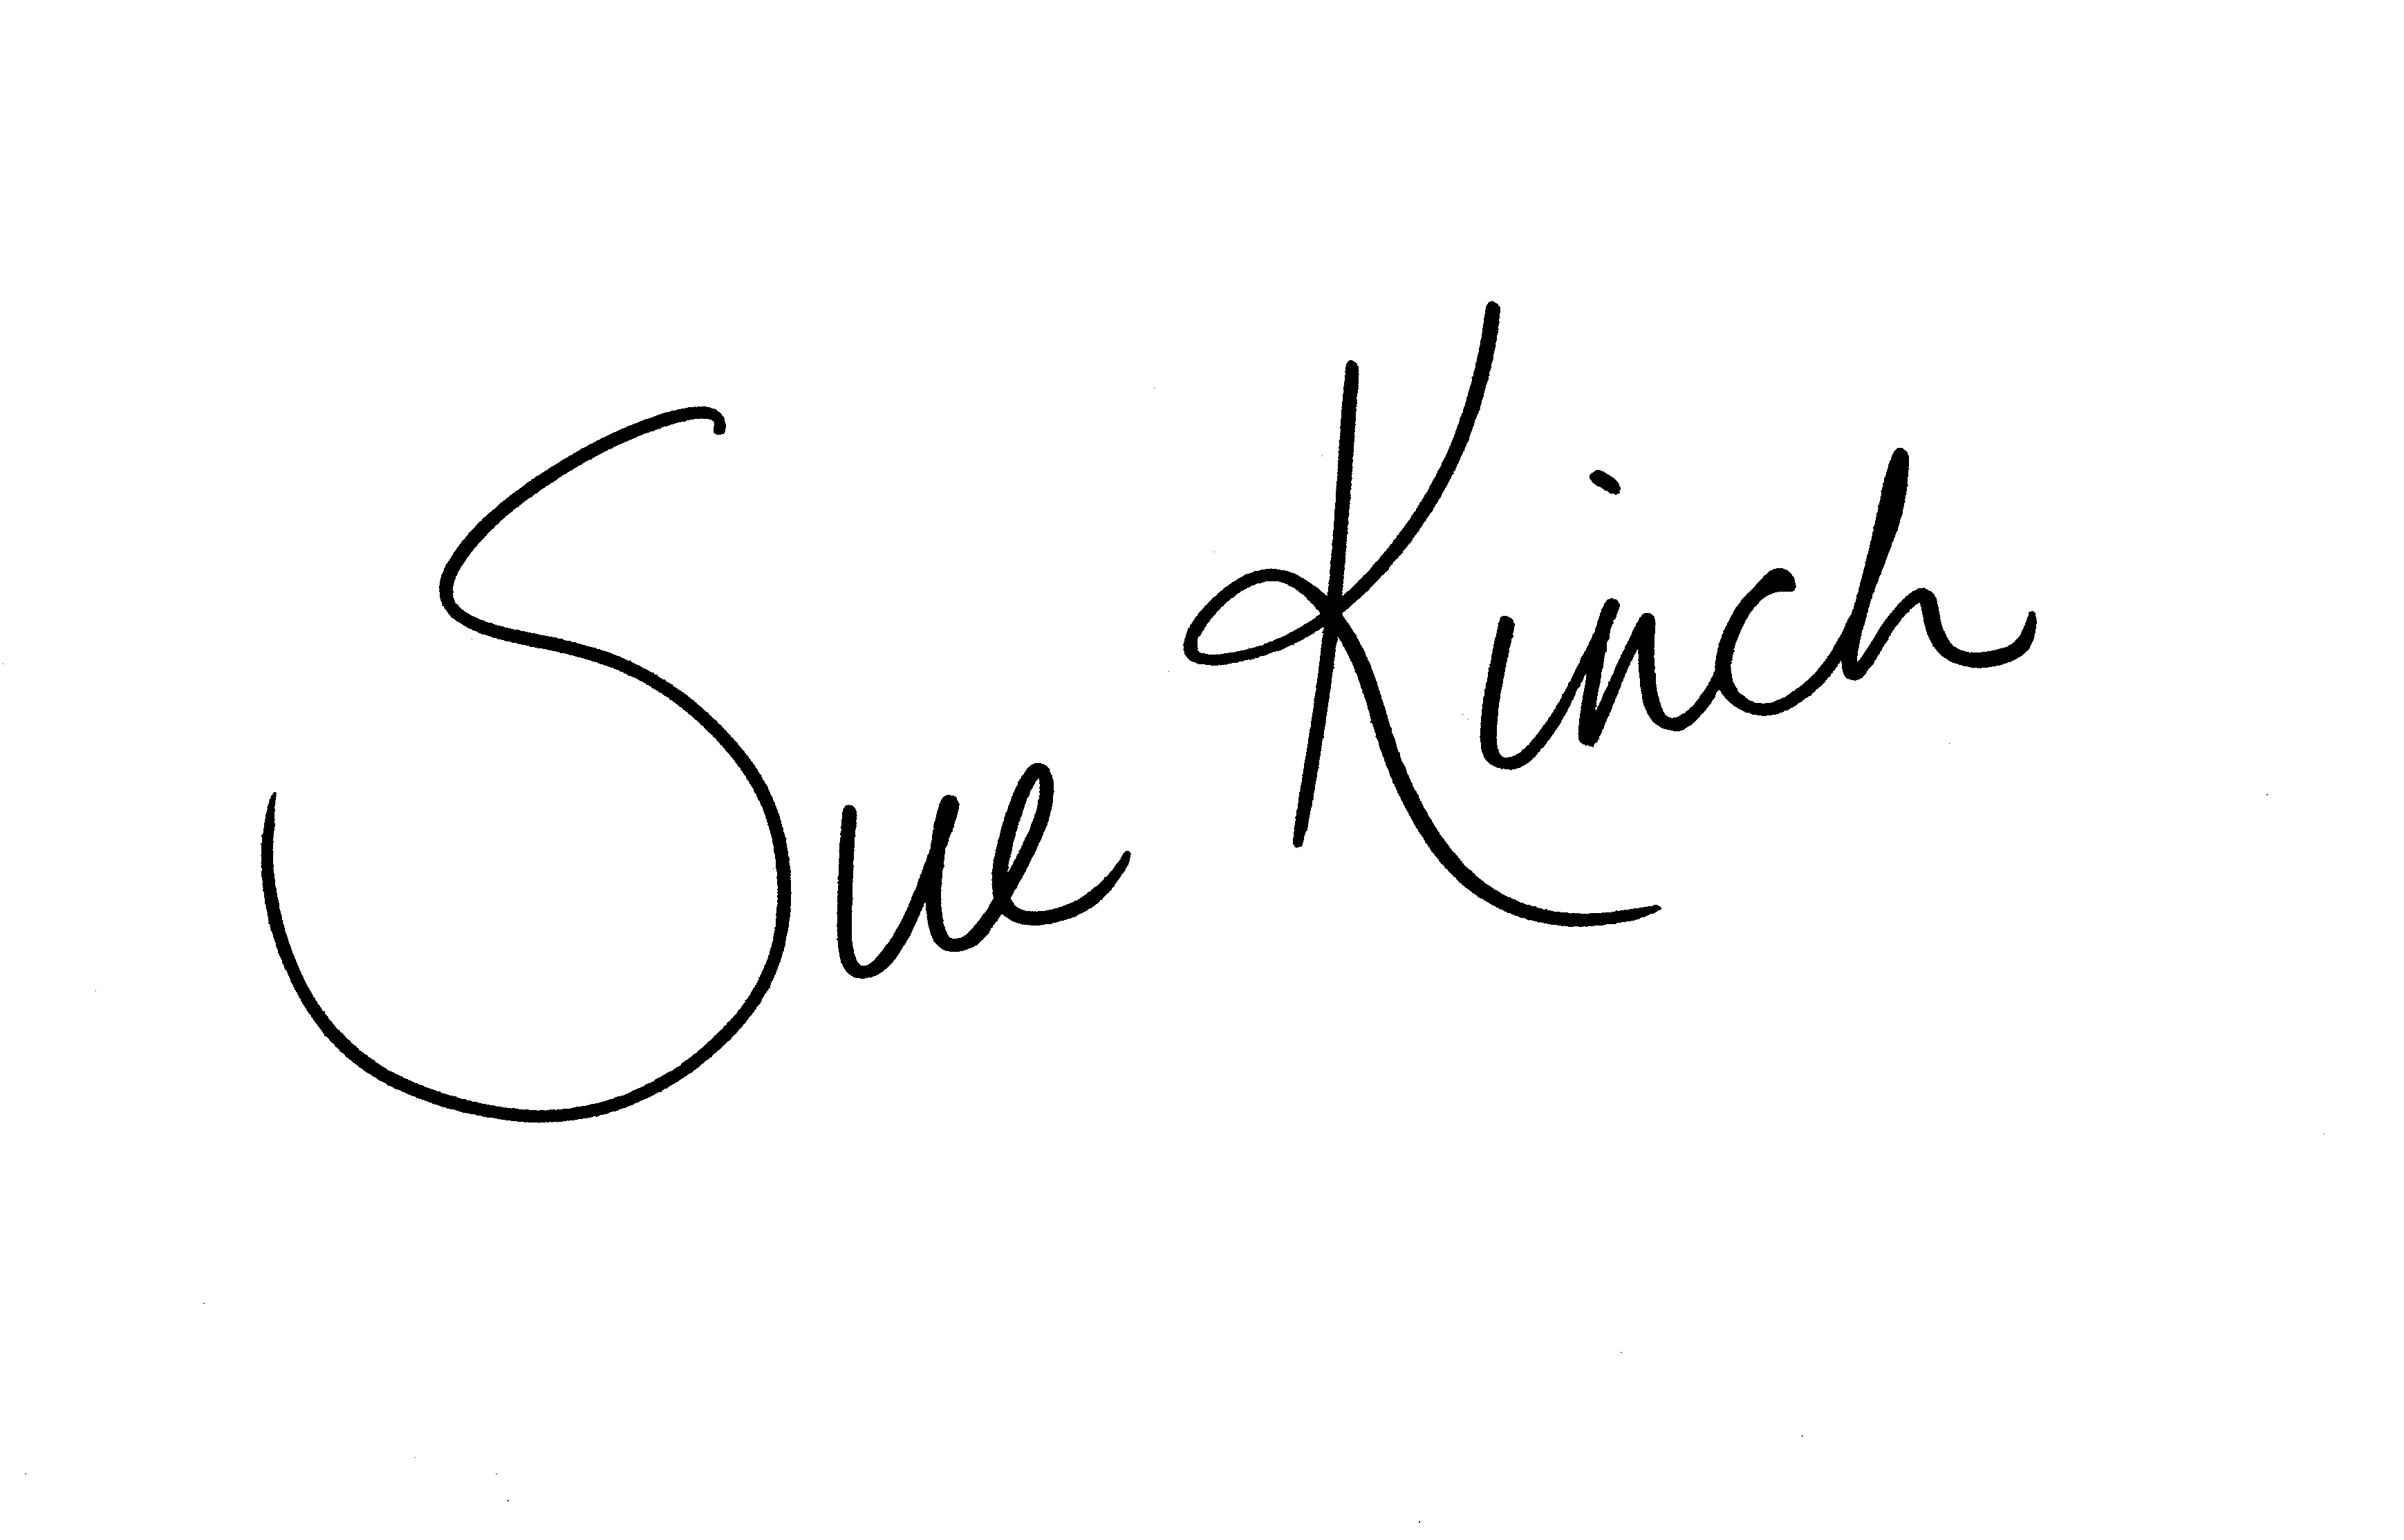 Sue Kinch